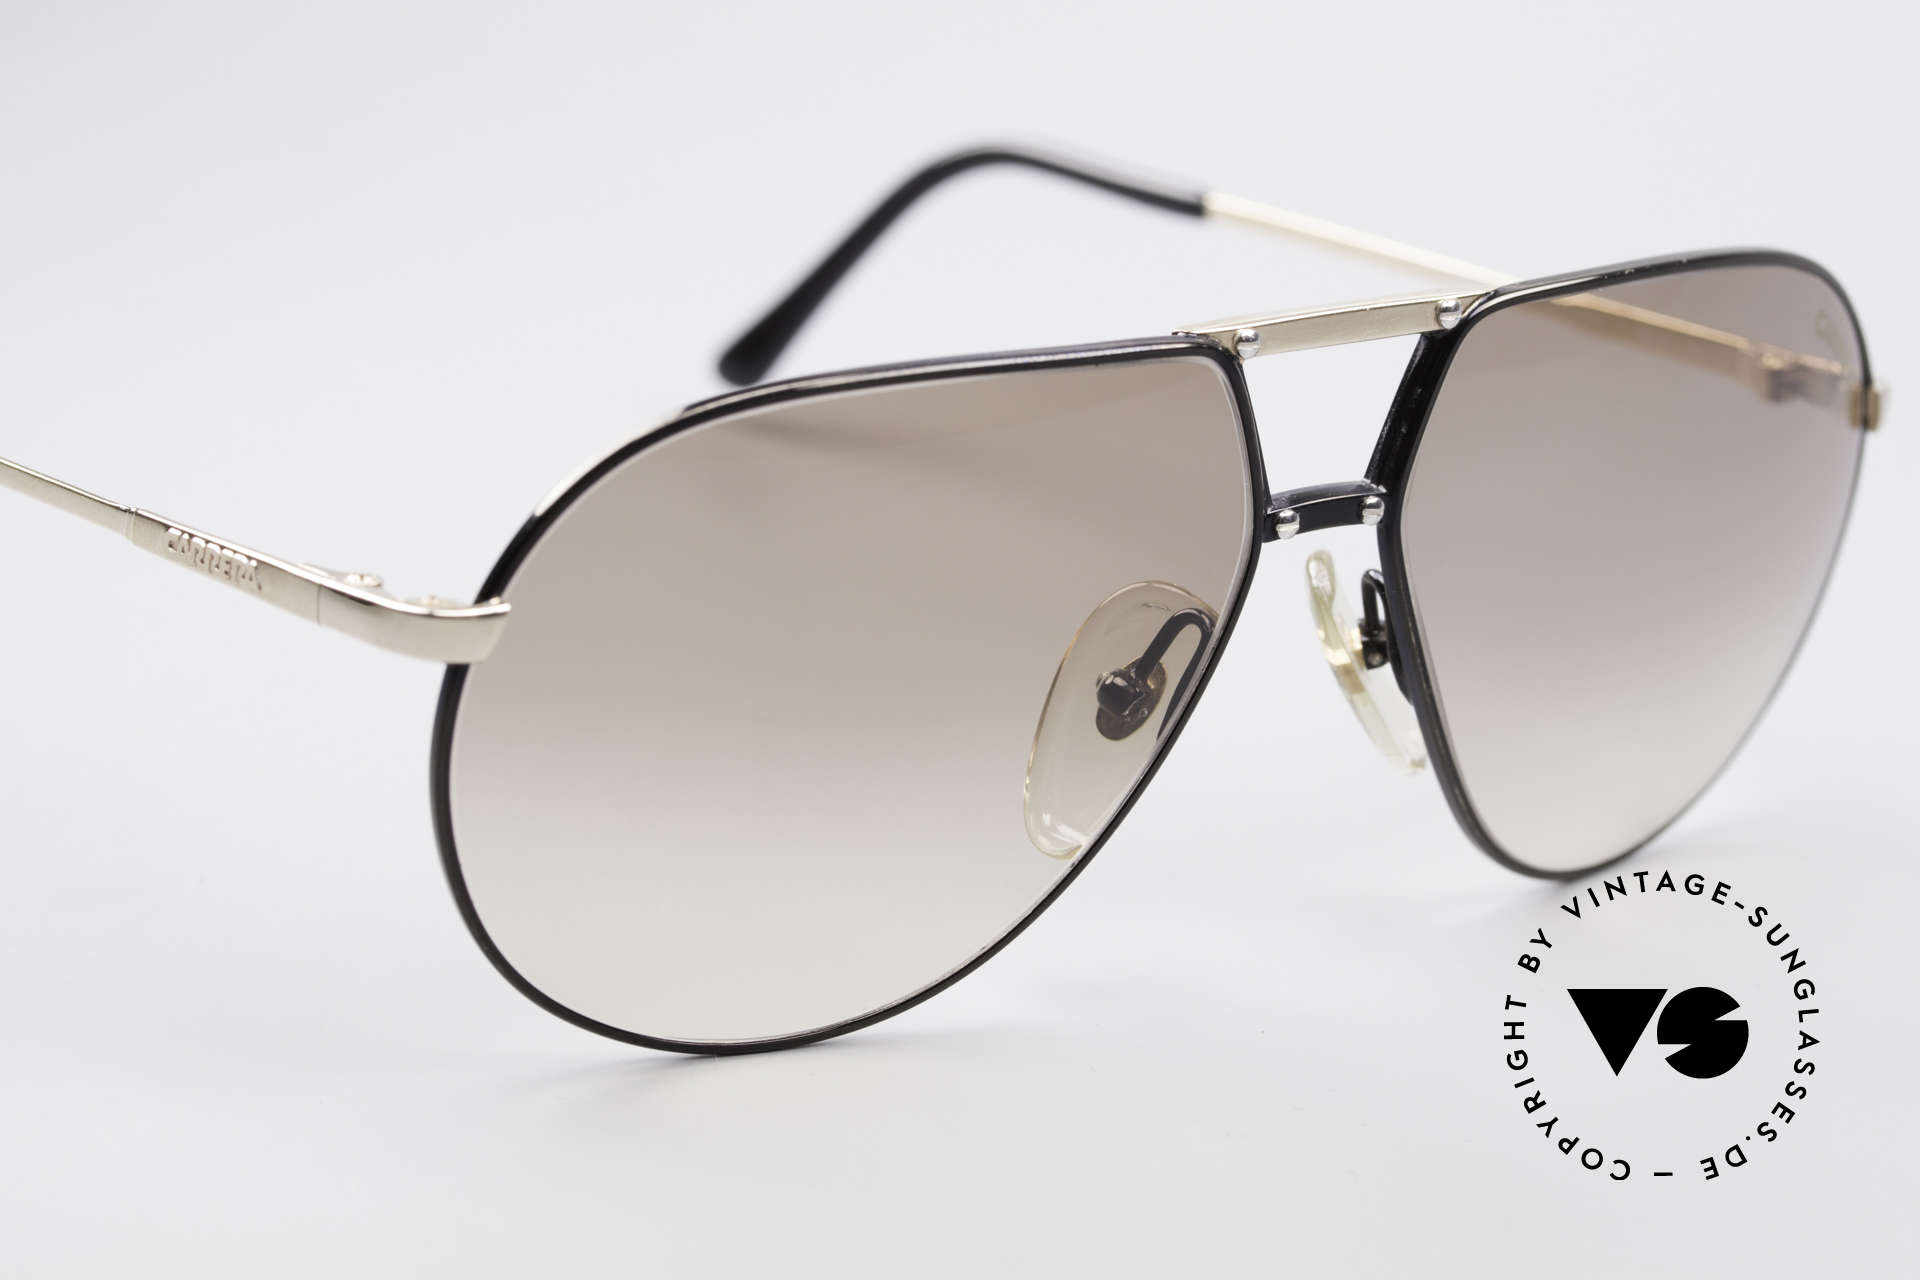 Carrera 5326 - S 80's Men's Sunglasses, never worn (like all our rare vintage Carrera eyewear), Made for Men and Women